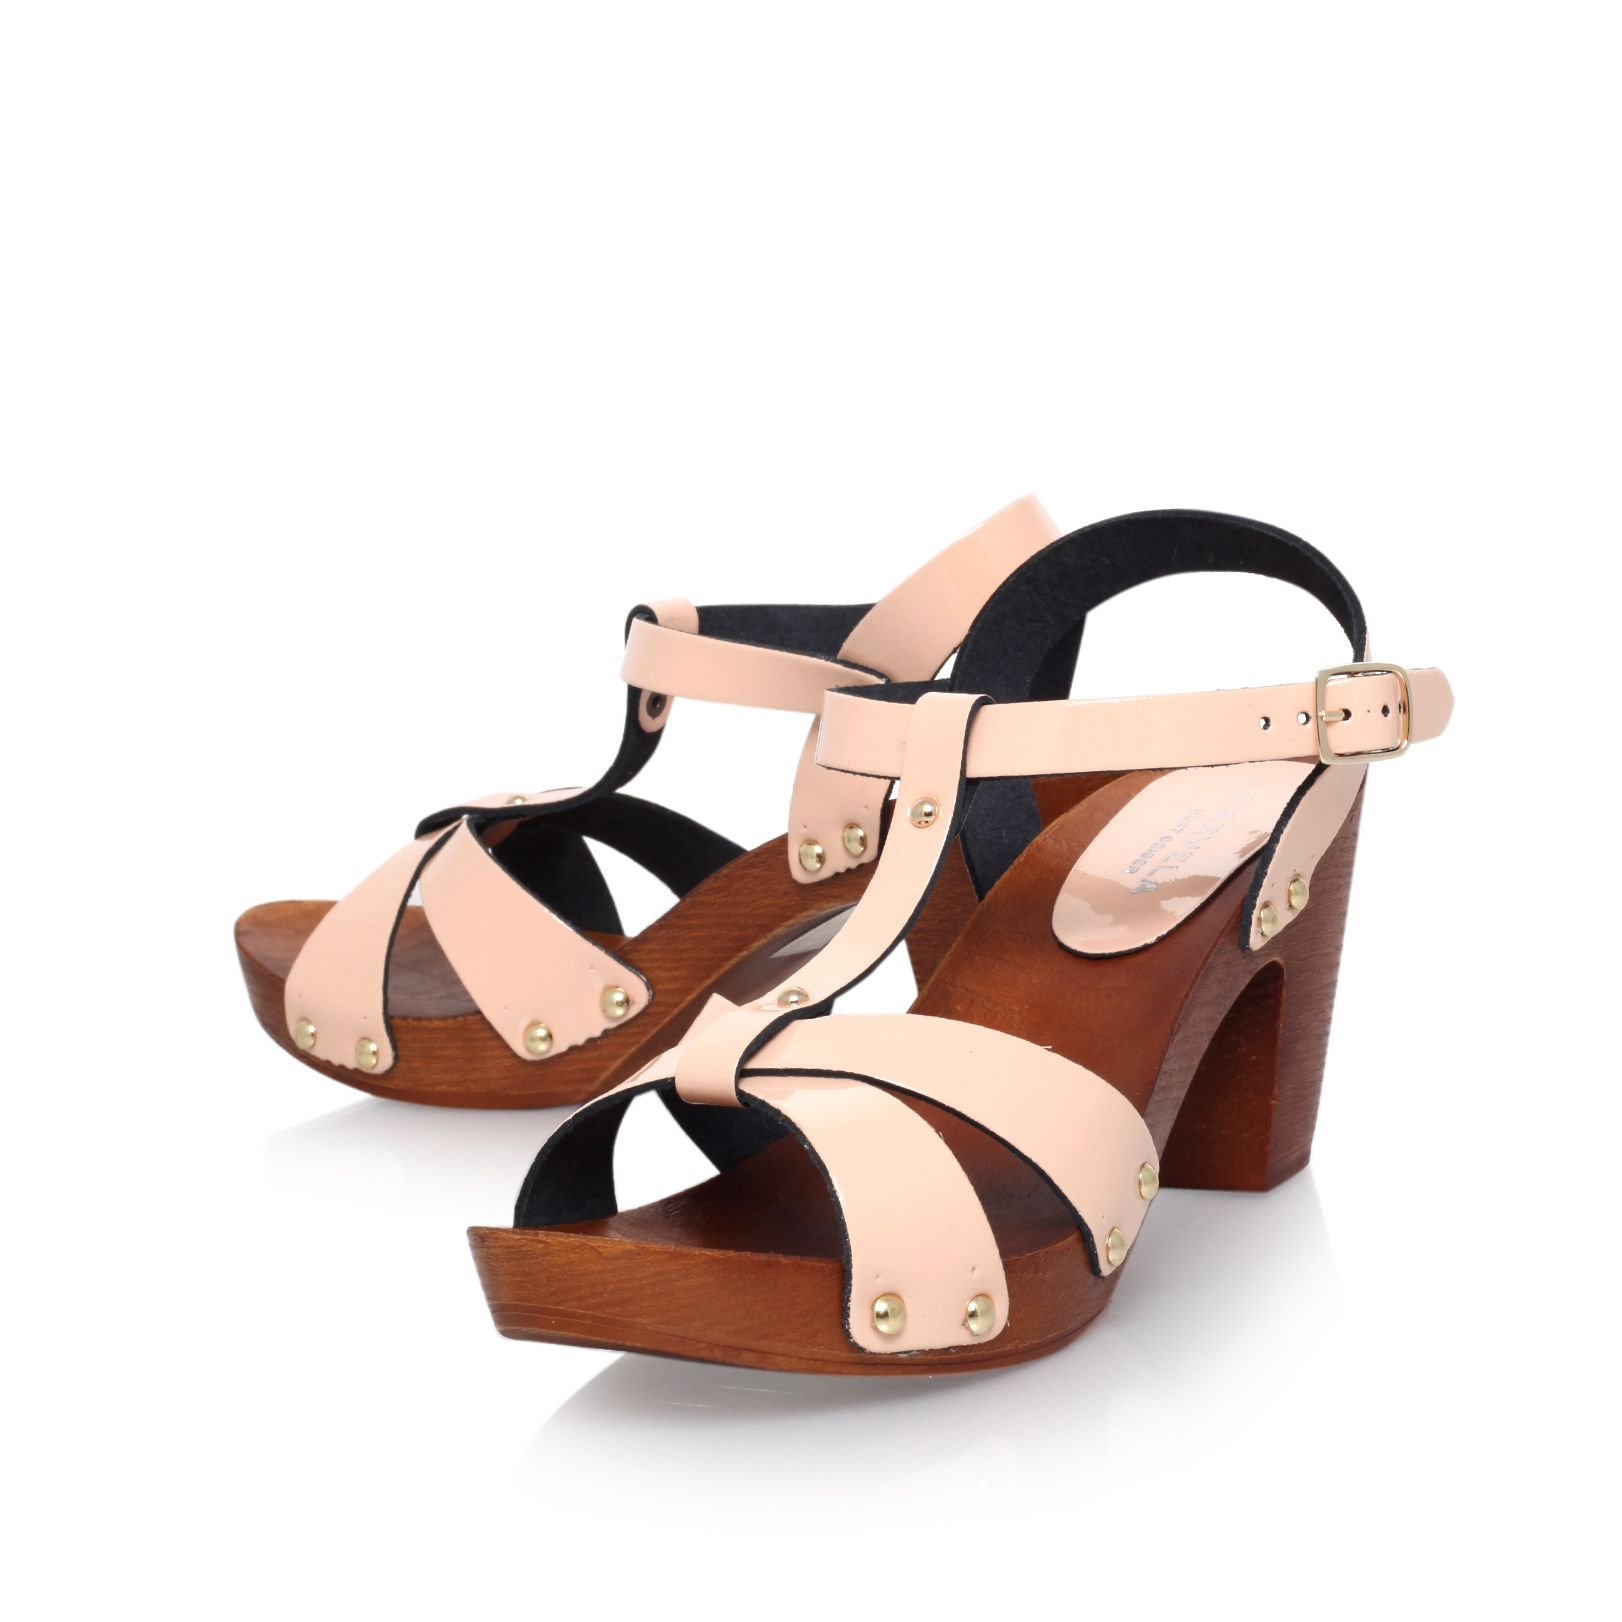 Sandra high heel platform sandals